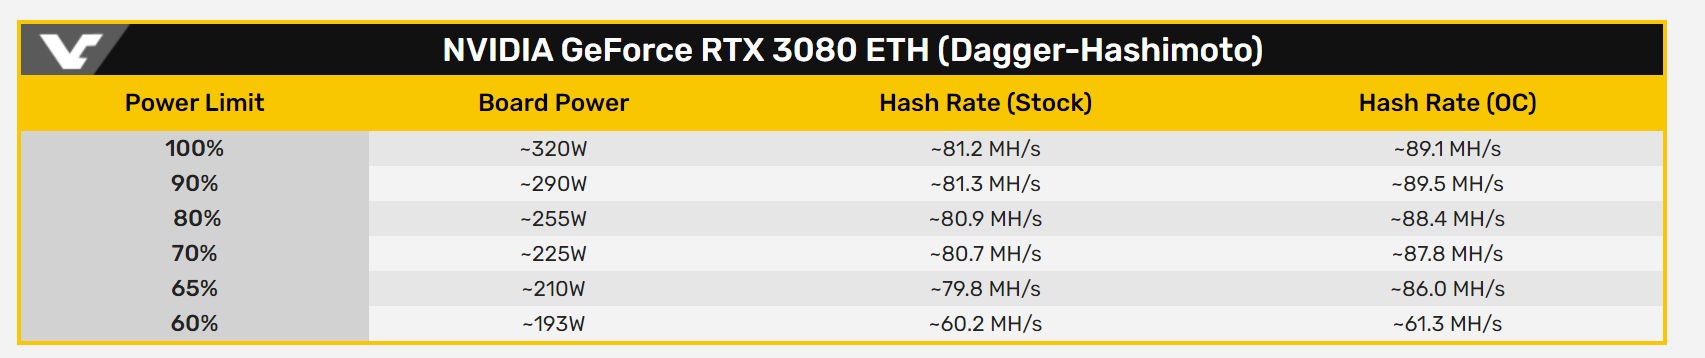 Nvidia Geforce Rtx 3080 The First Test In Mining On The Daggerhashimoto Ethash Algorithm Nvidia geforce rtx 3080 ampere gaming graphics card render. nvidia geforce rtx 3080 the first